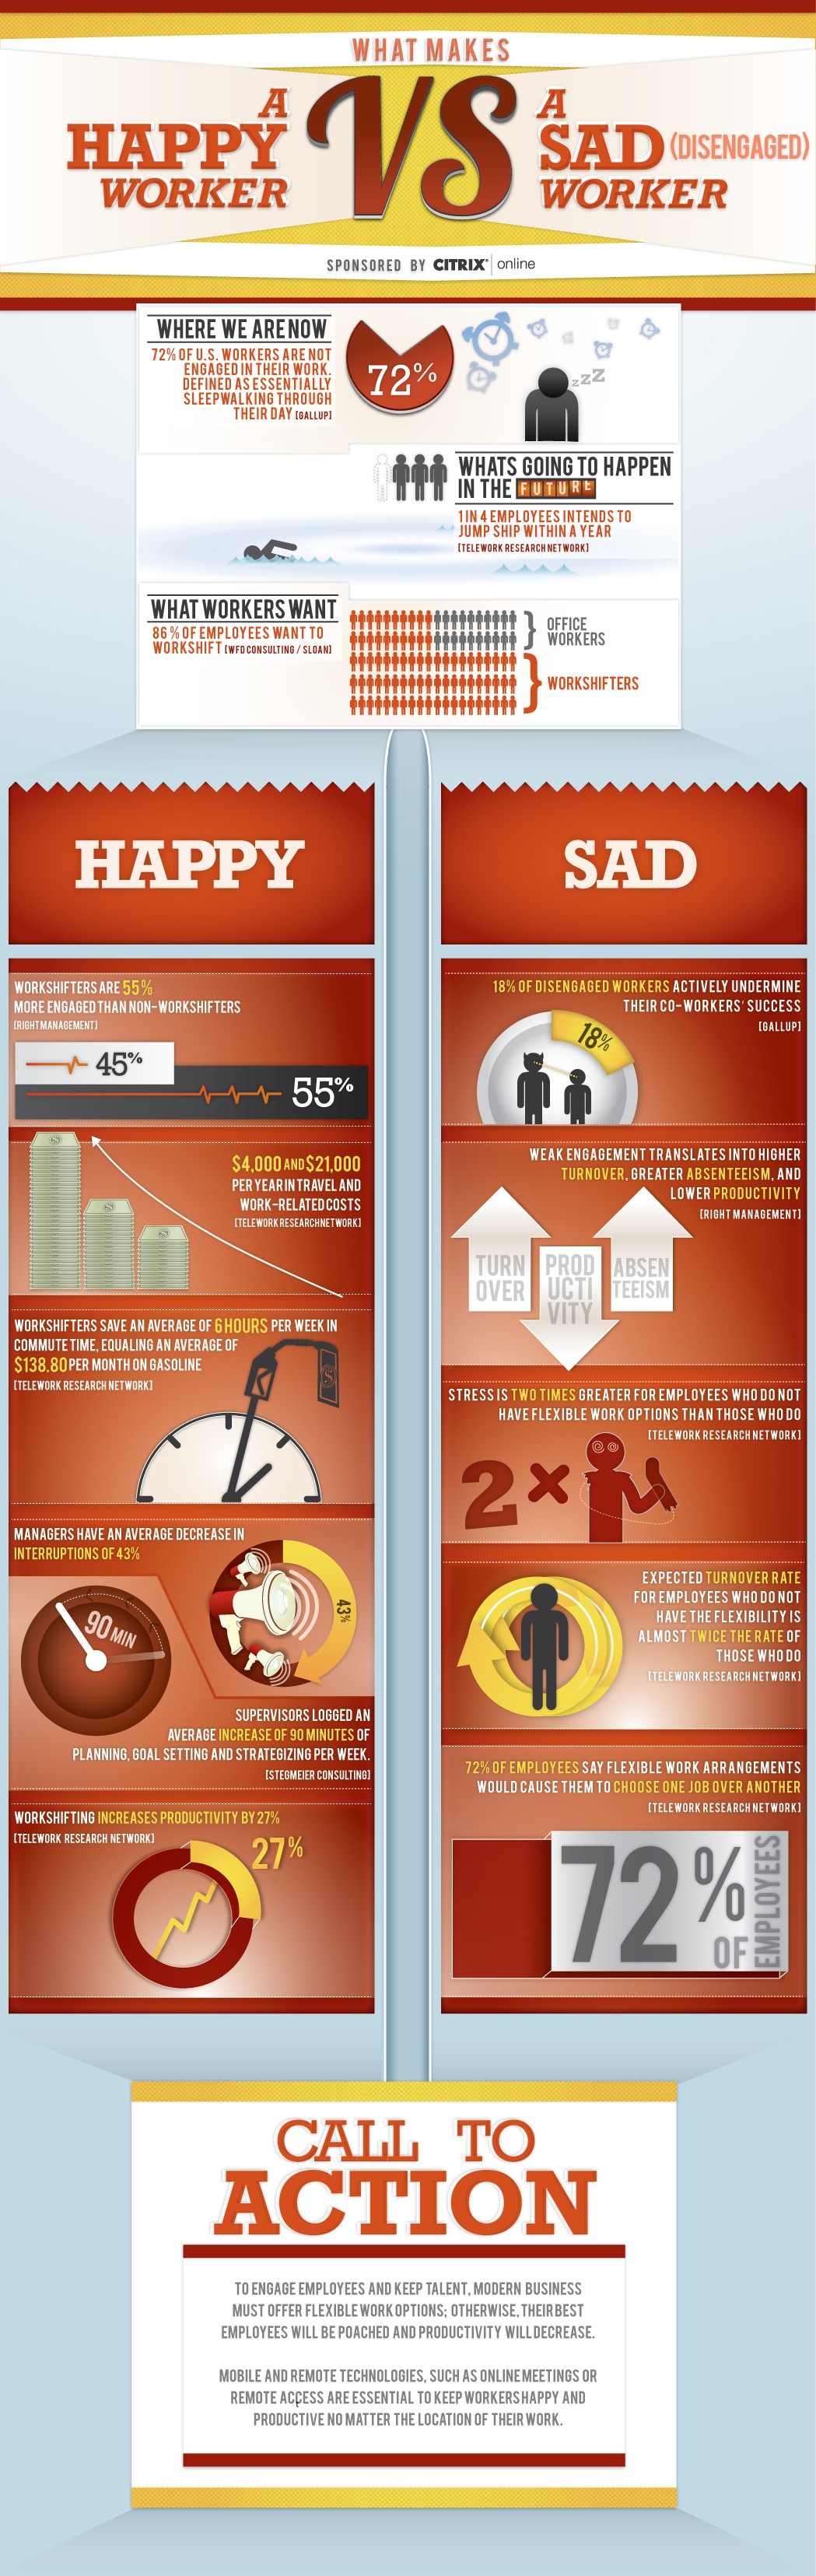 HR Infographic: What Makes A Happy Worker VS A Sad Worker - ComplianceandSafety.com